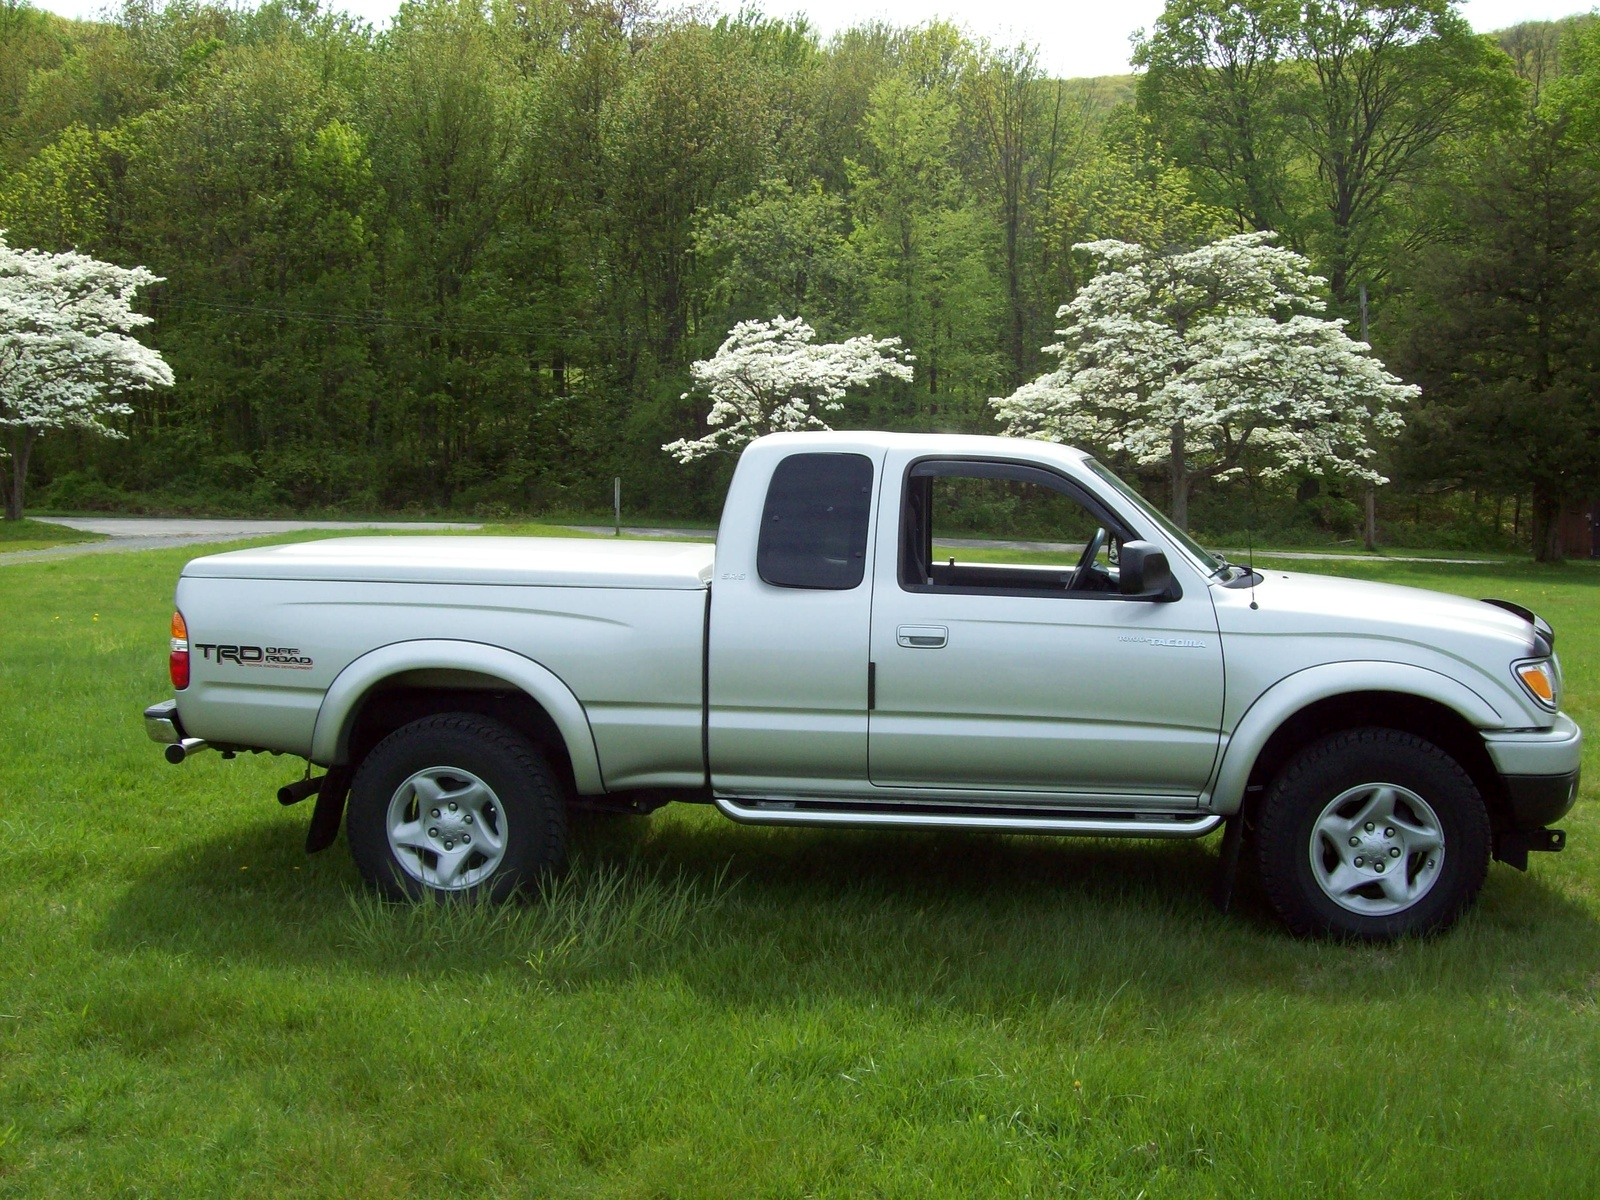 2003 Toyota Tacoma Prerunner For Sale Picture of 2002 Toyota Tacoma 2 Dr STD 4WD Extended Cab lB, exterior